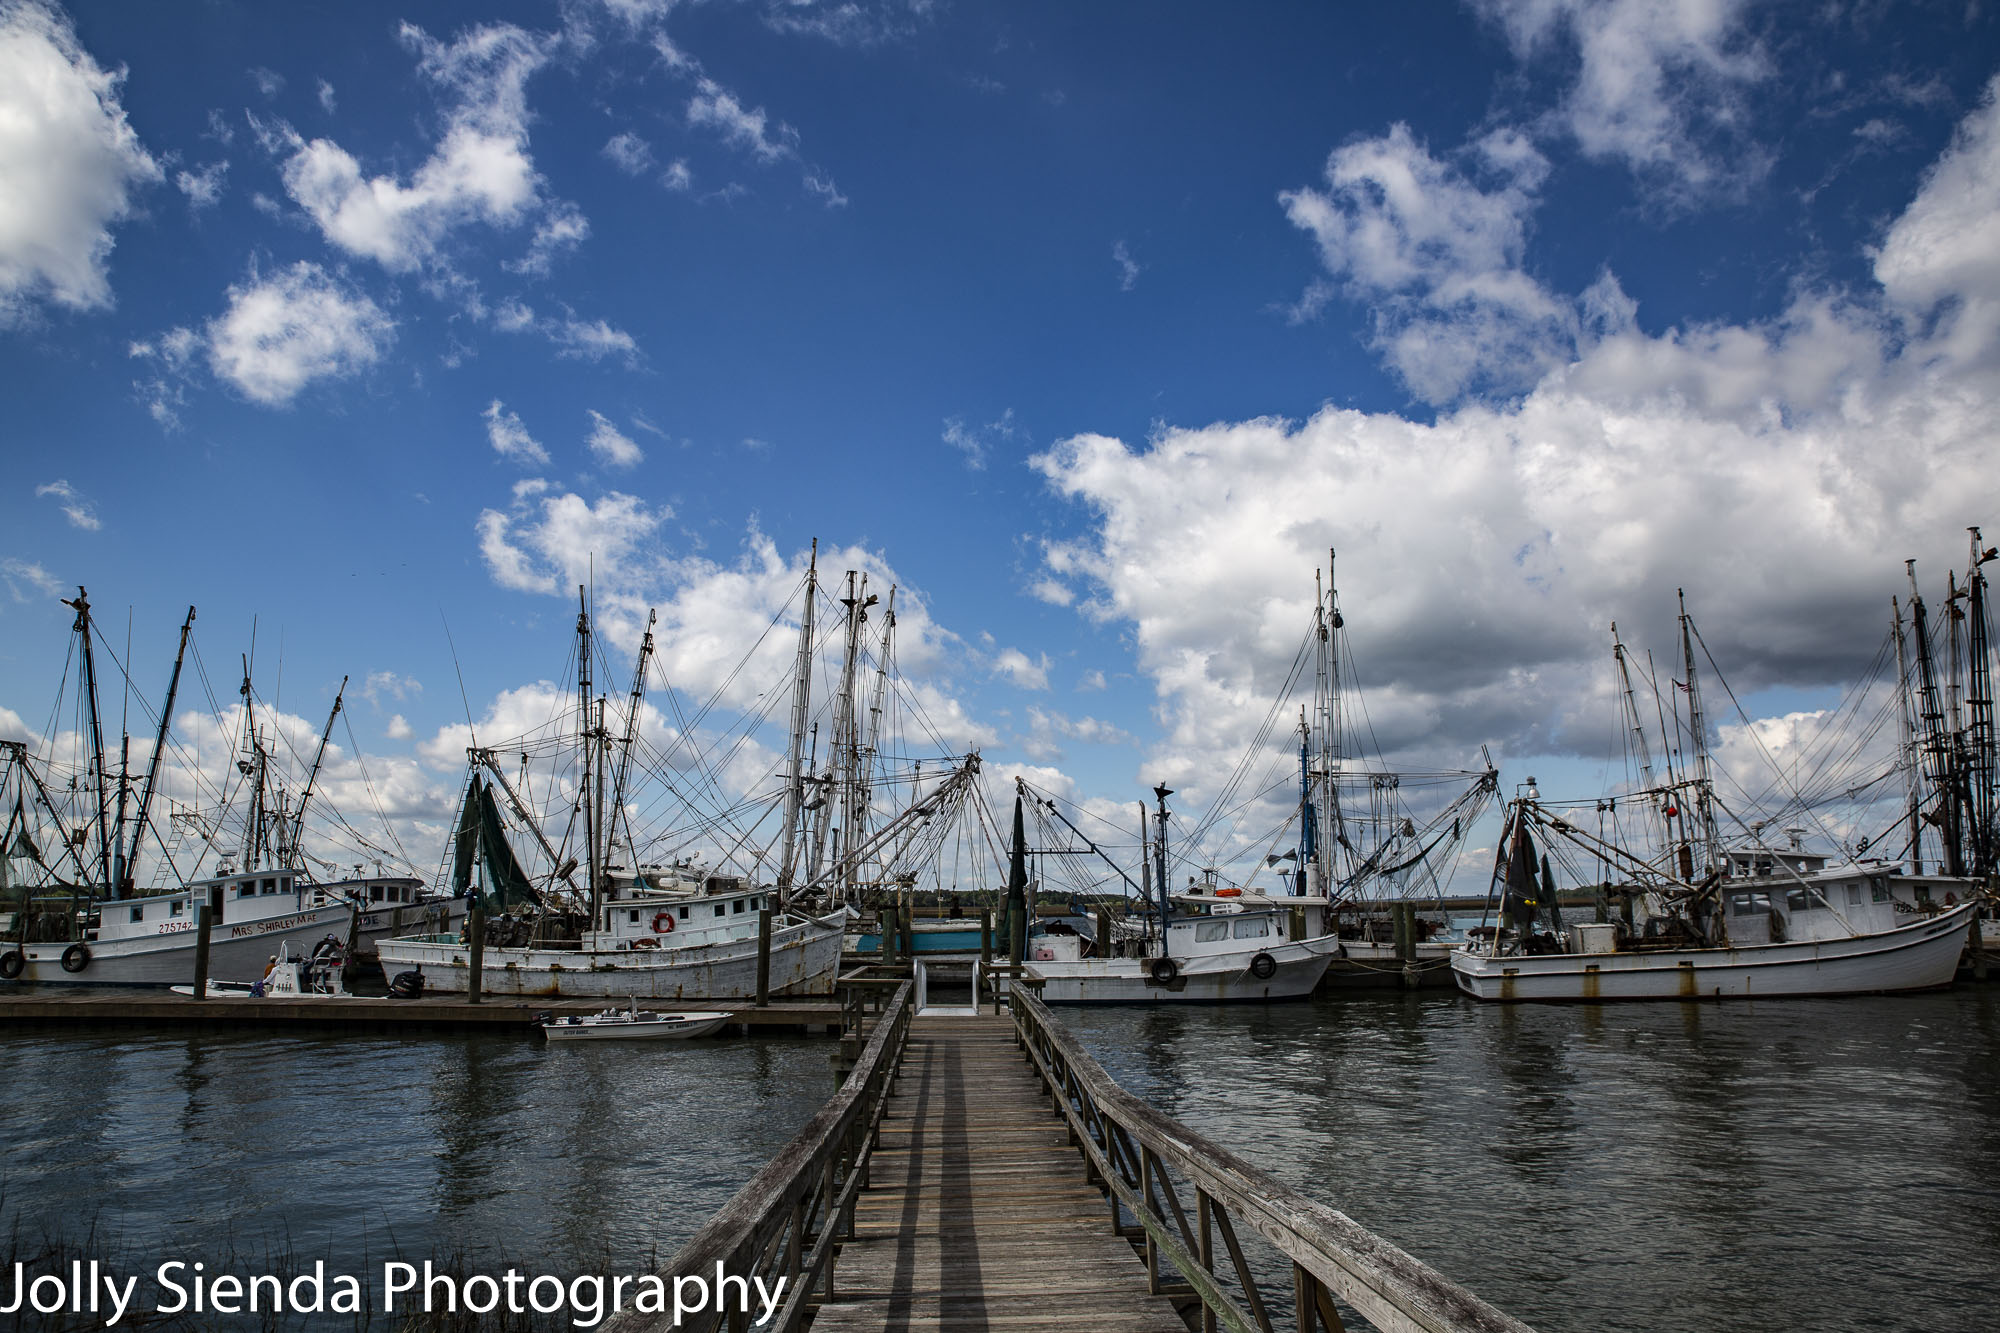 Shrimp fishing boats and the dock at Port Royal, South Carolina.